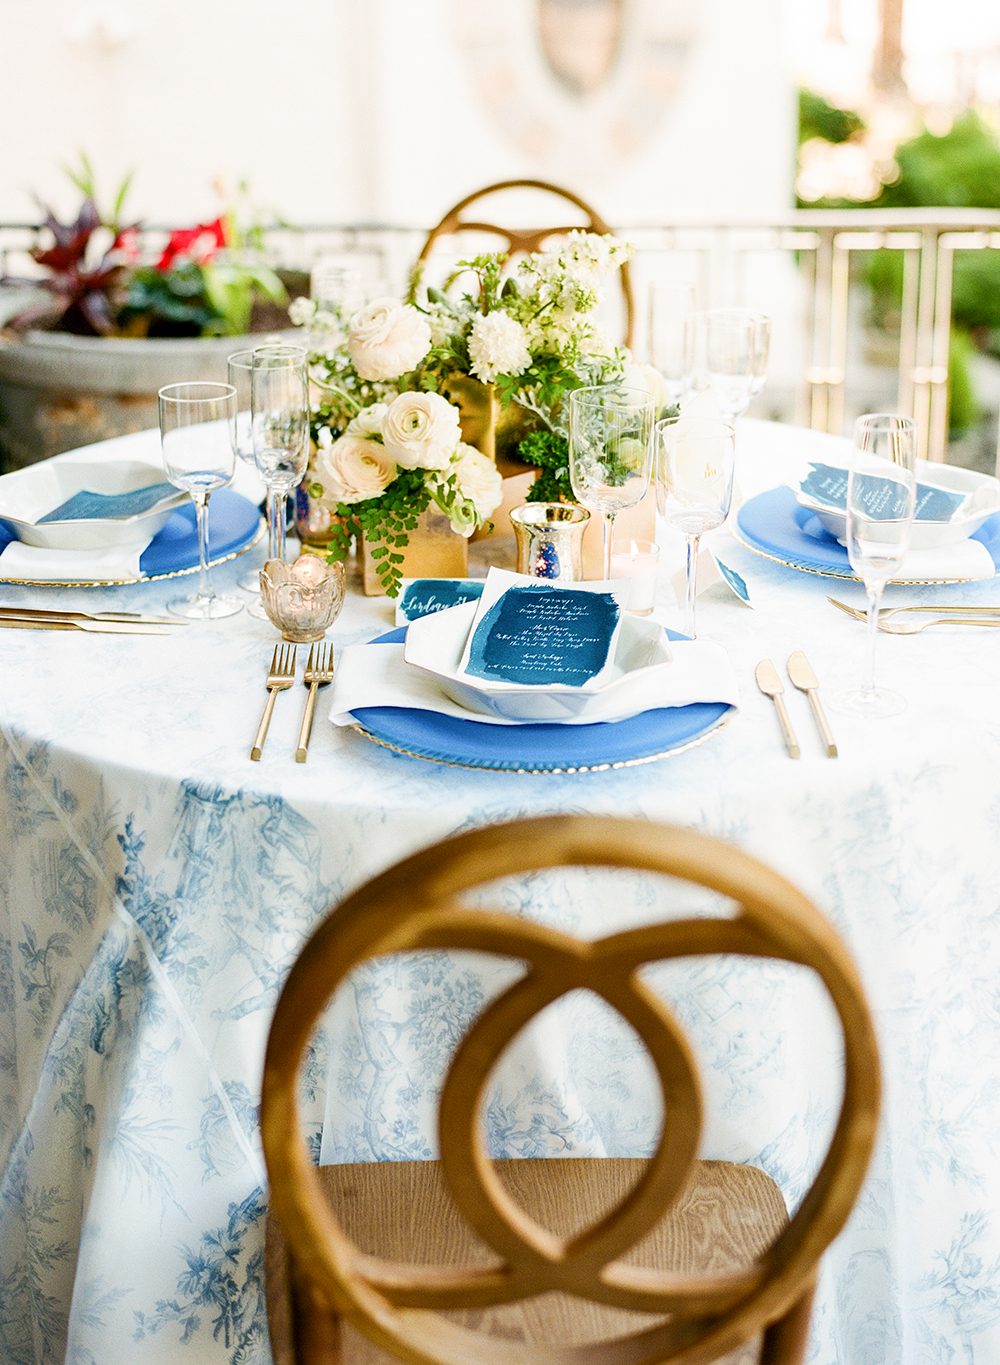 modern wedding reception - photo by Lisa Blume Photography http://ruffledblog.com/cyanotype-inspired-wedding-ideas